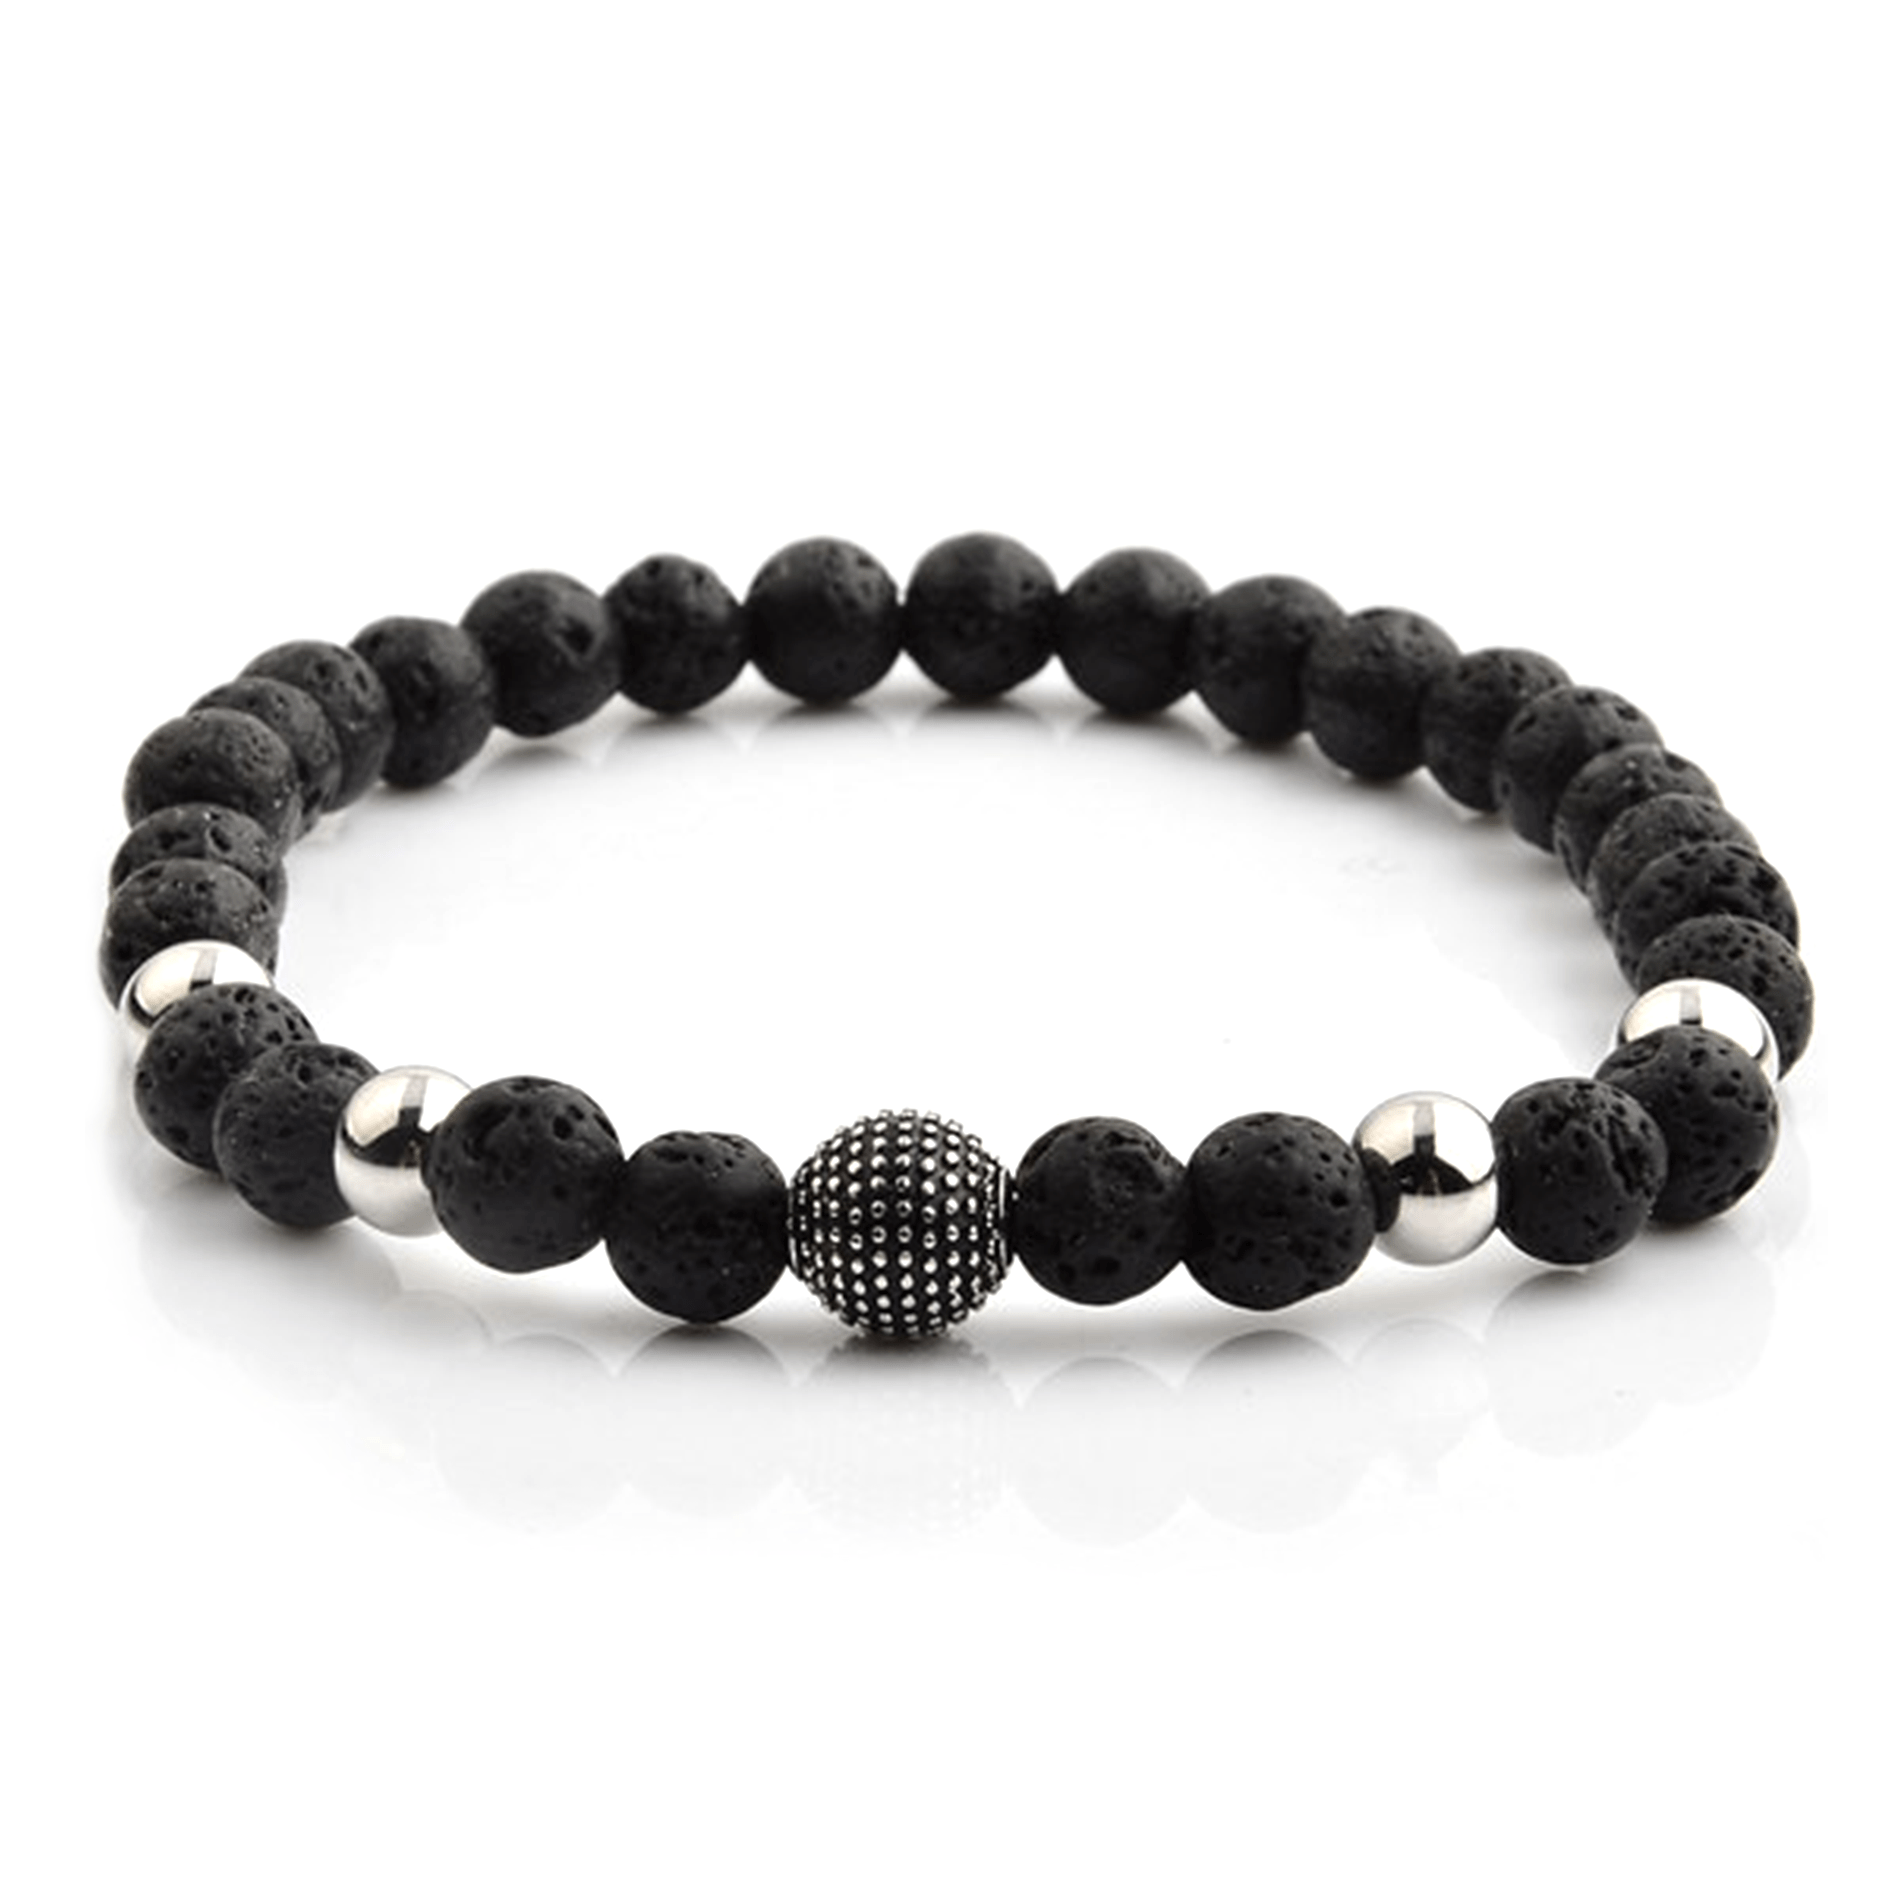 HYLIZO X Series 356 - Volcano Beaded bracelet with 316 Stainless Steel Spike ball